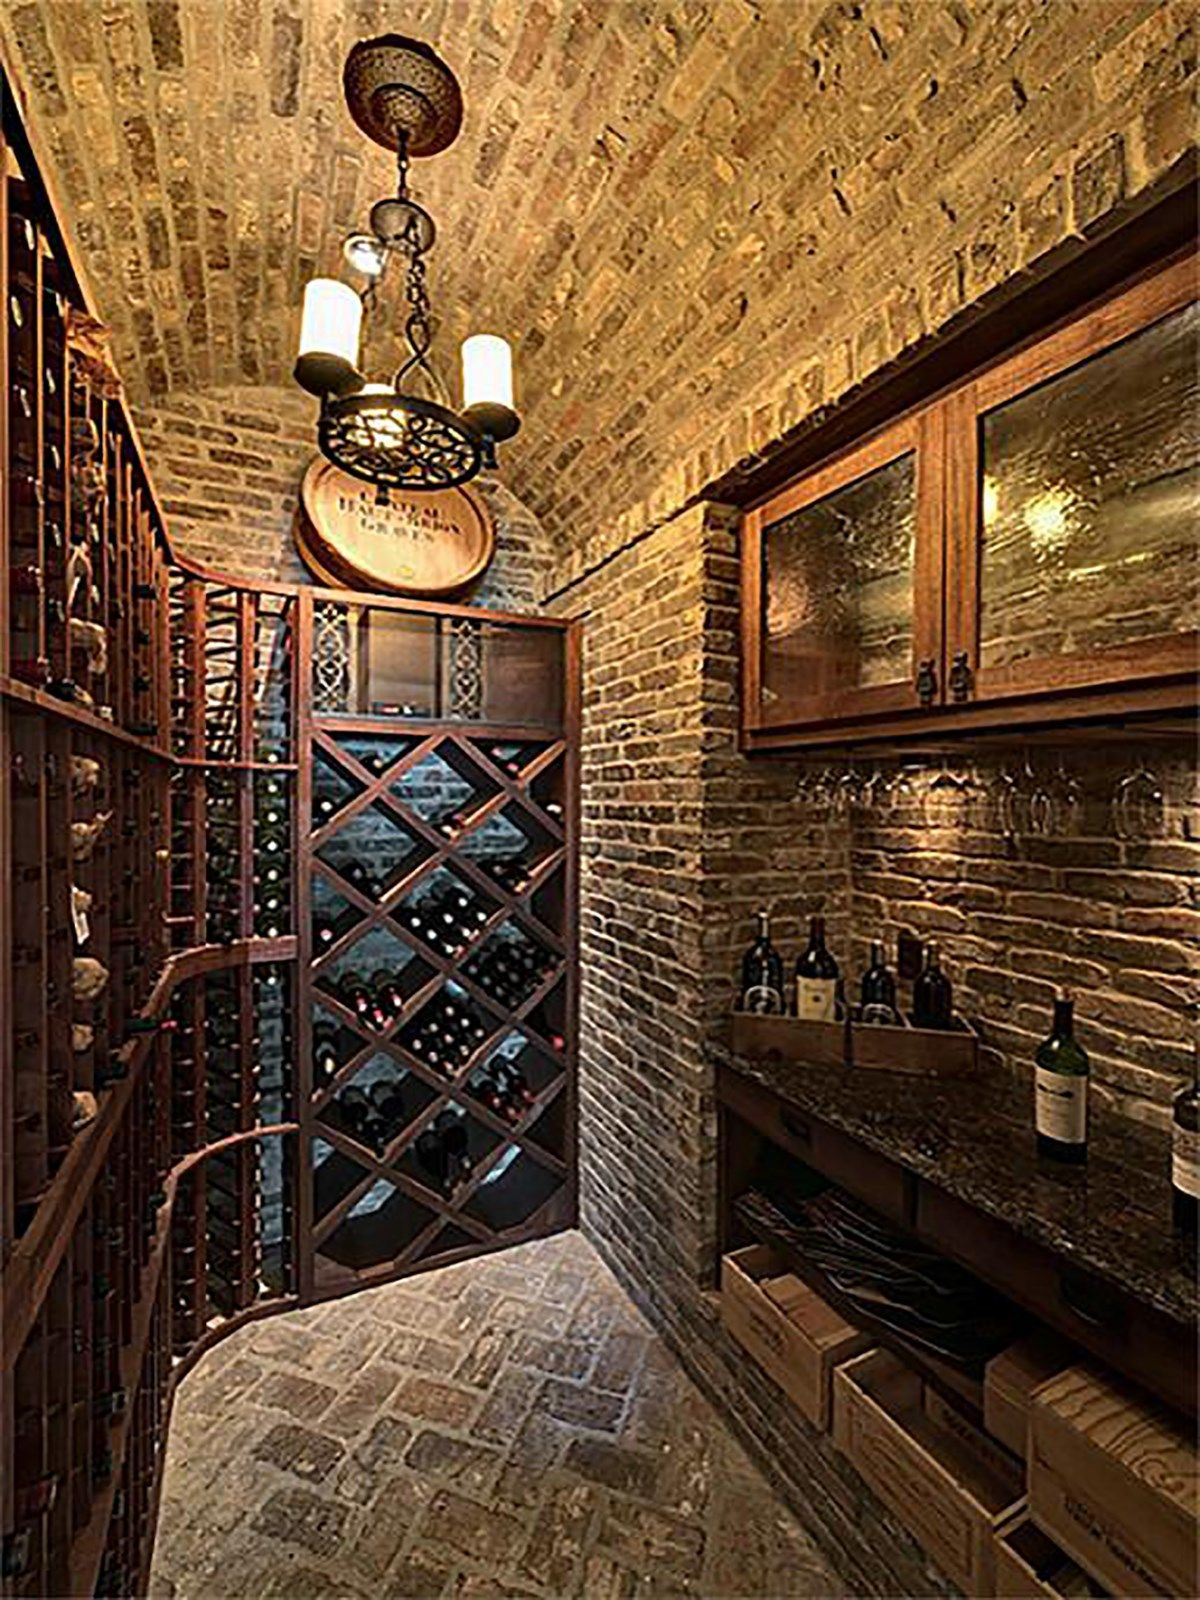 300 Ceiling Design Ideas (Pictures) | Narrow rooms, Wine cellars ...